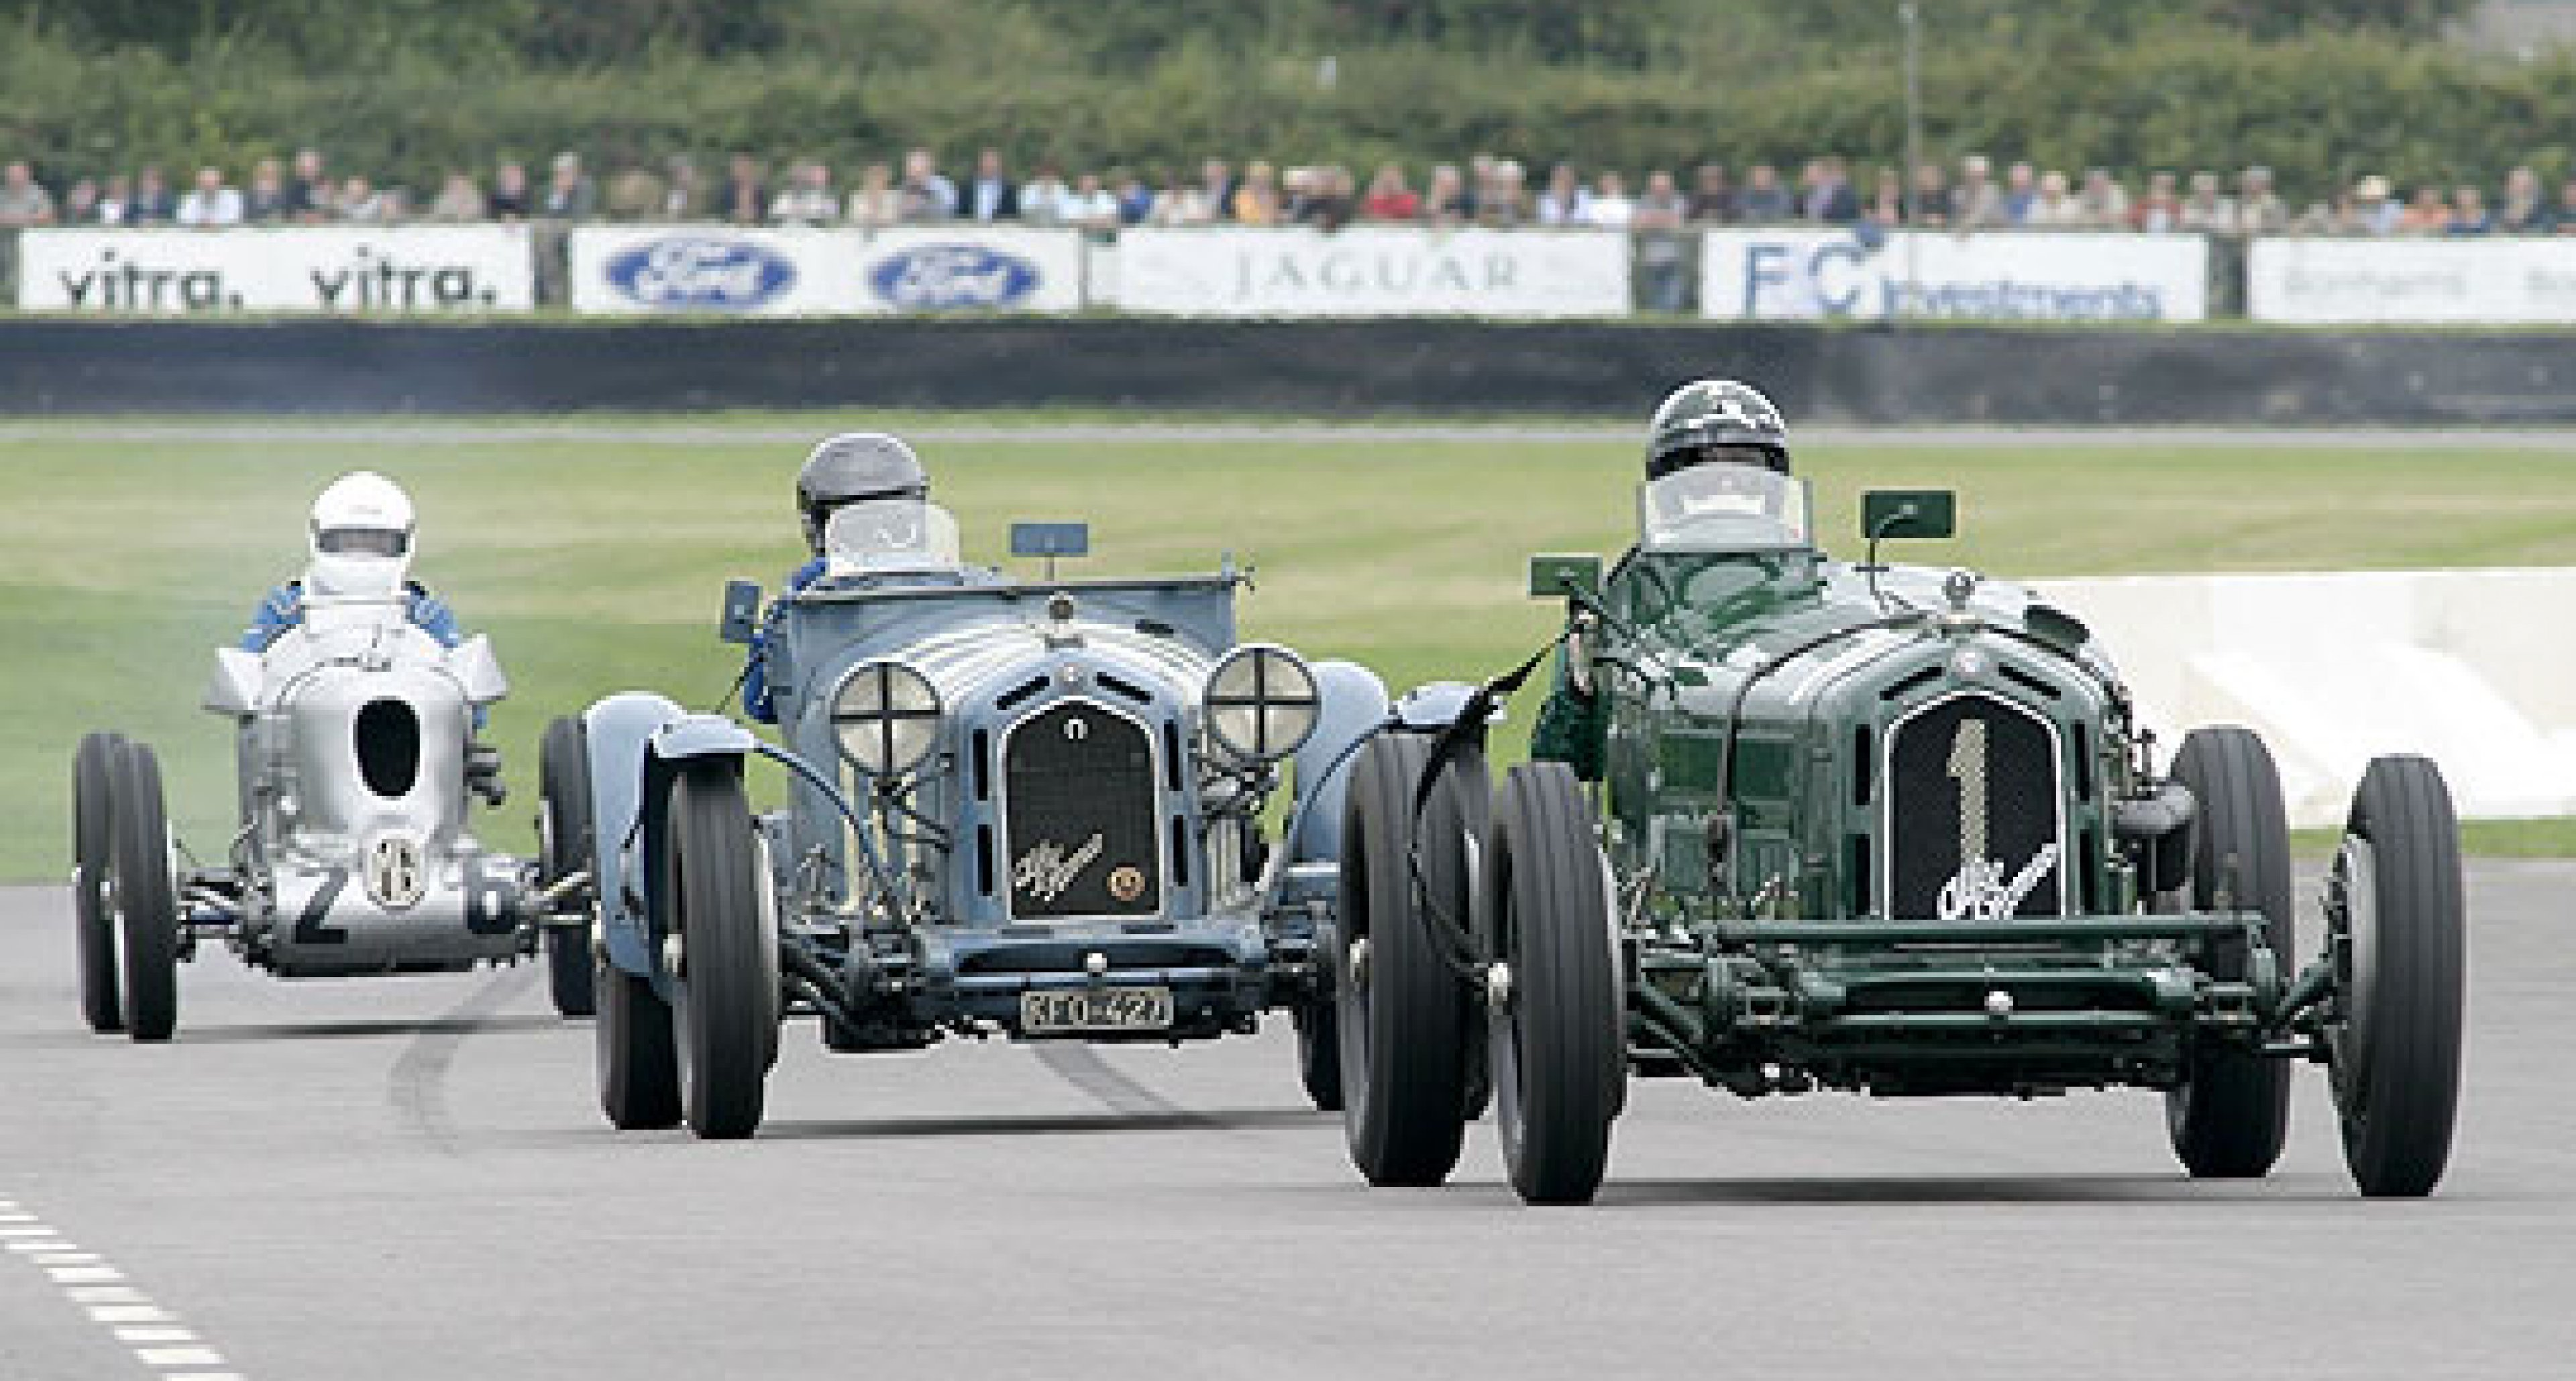 The 2007 Goodwood Revival